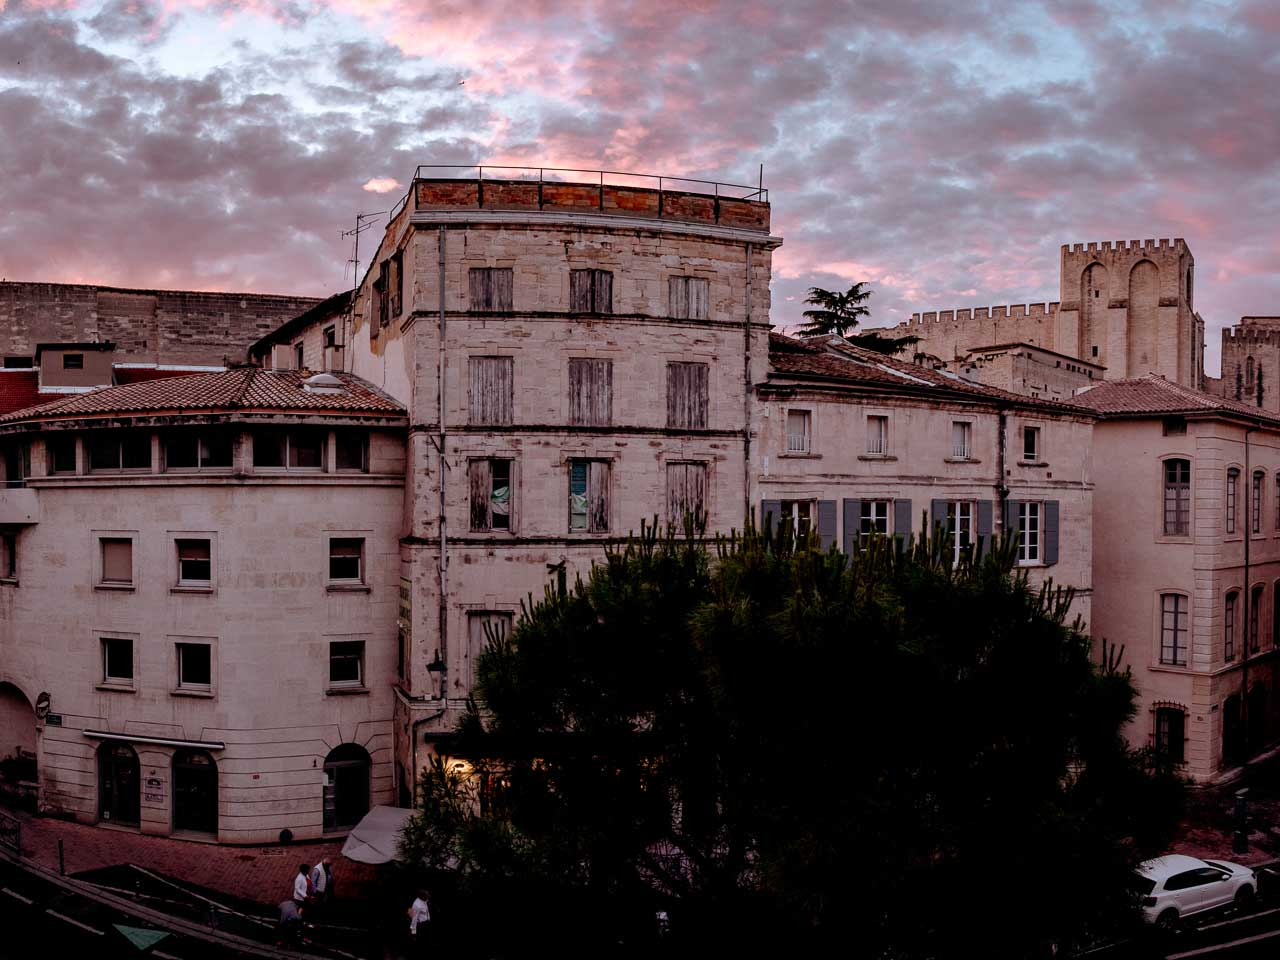 Another beautiful sunset shot in Avignon, our favorite city in the south of France.